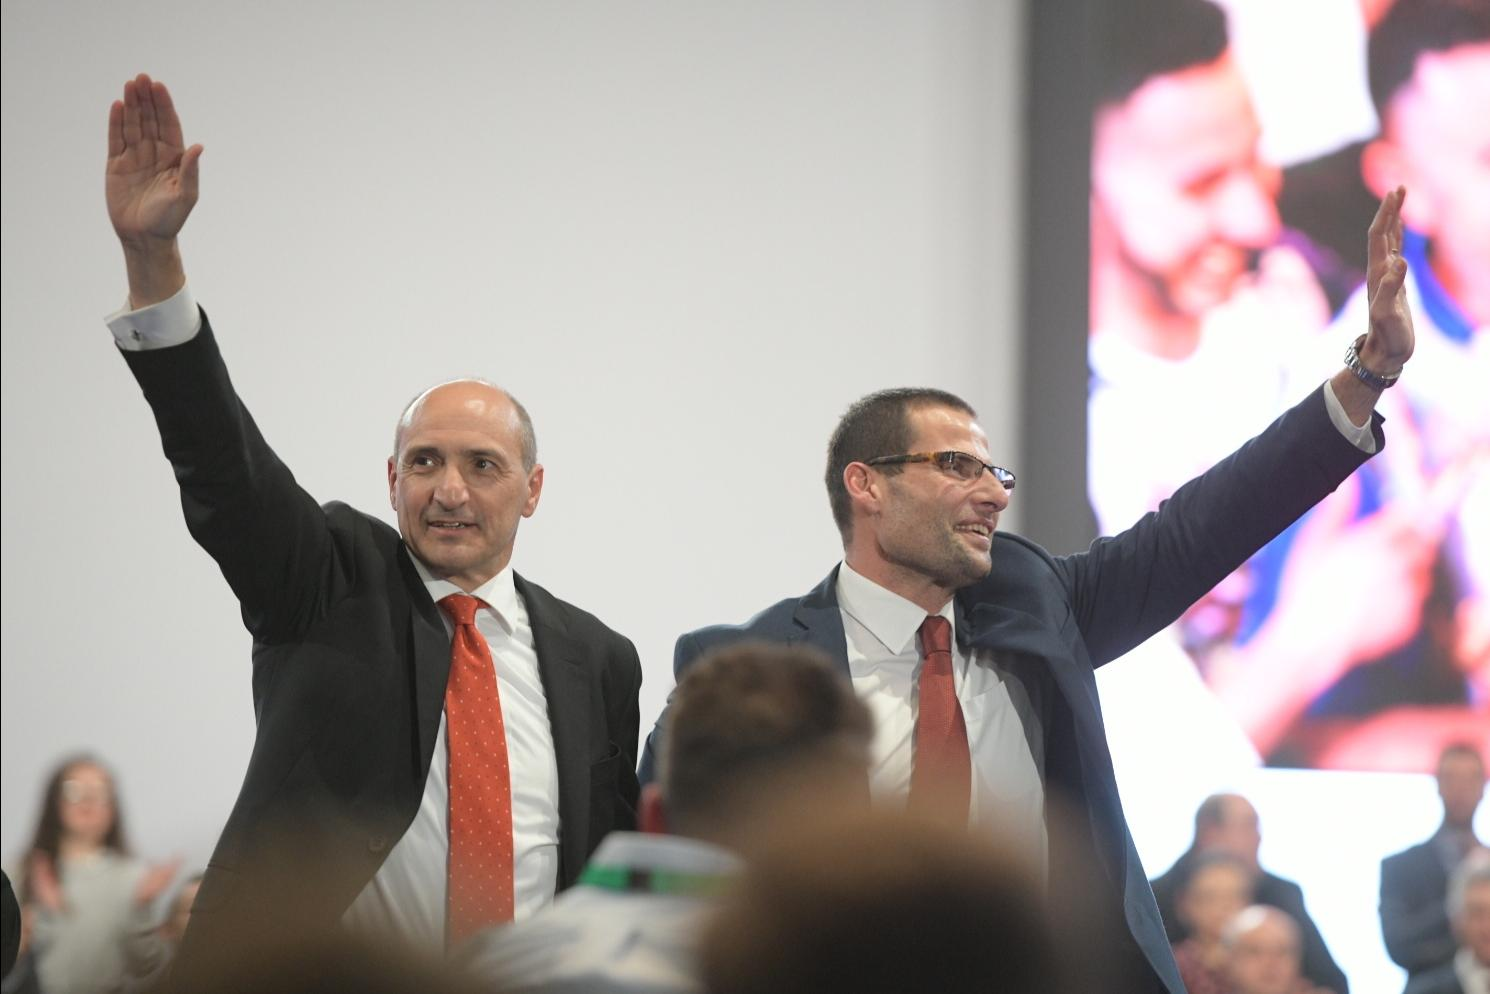 Chris Fearne (left) and Robert Abela (right) wave to a crowd gathered in Corradino to listen to outgoing PL leader Joseph Muscat's last speech. Photo: Matthew Mirabelli